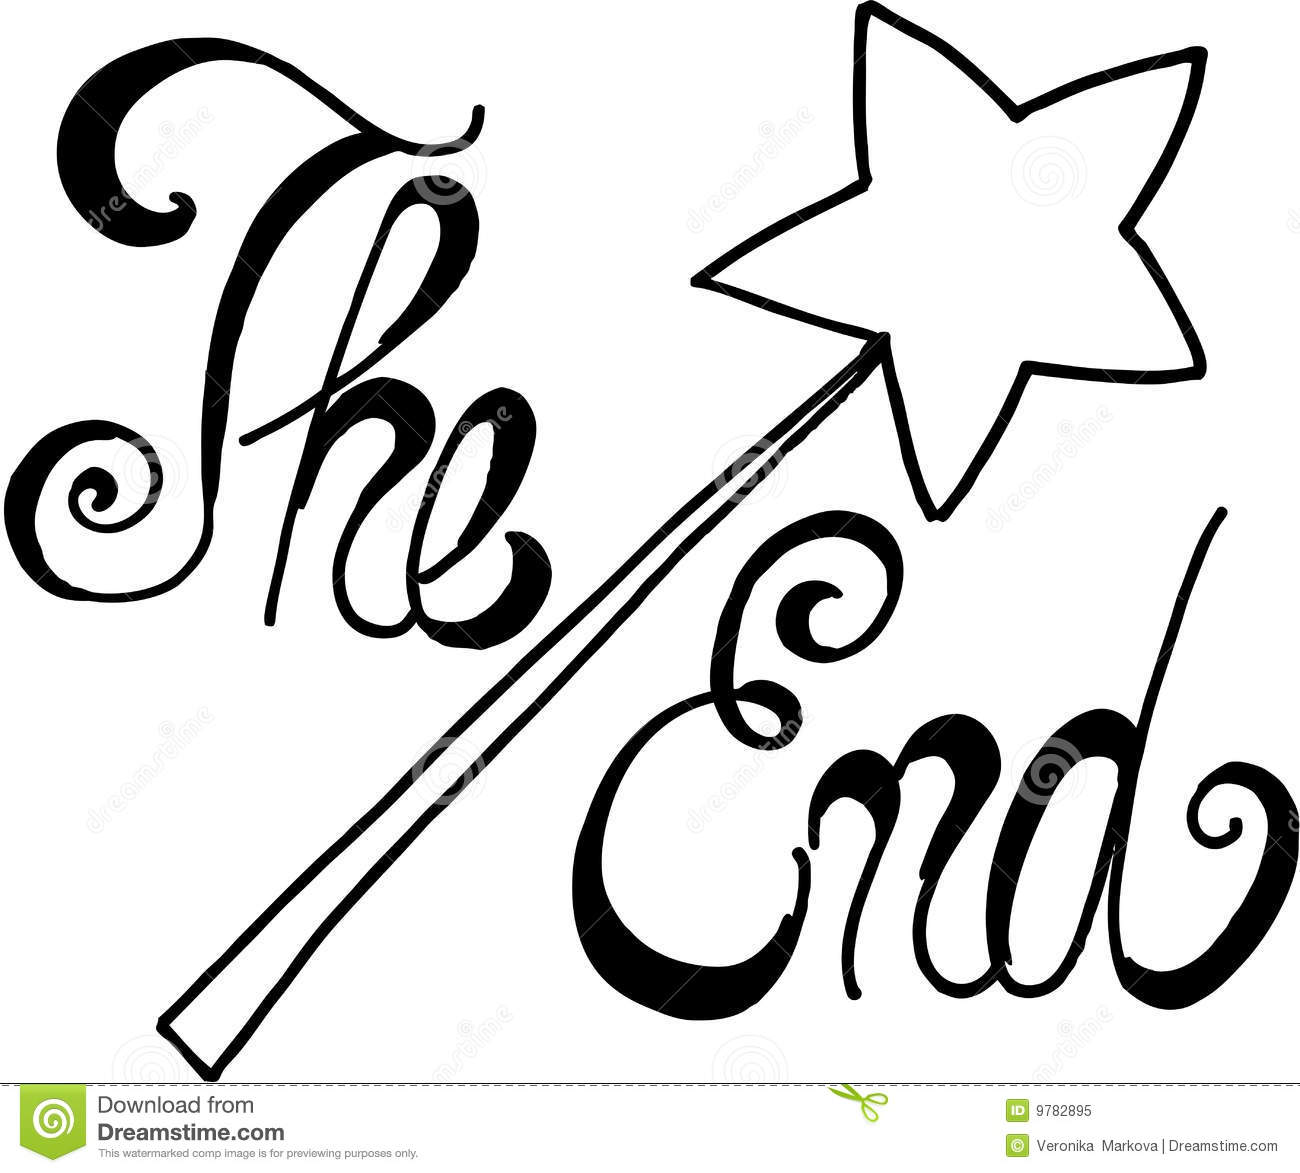 The end of story in black. vector image on white background.